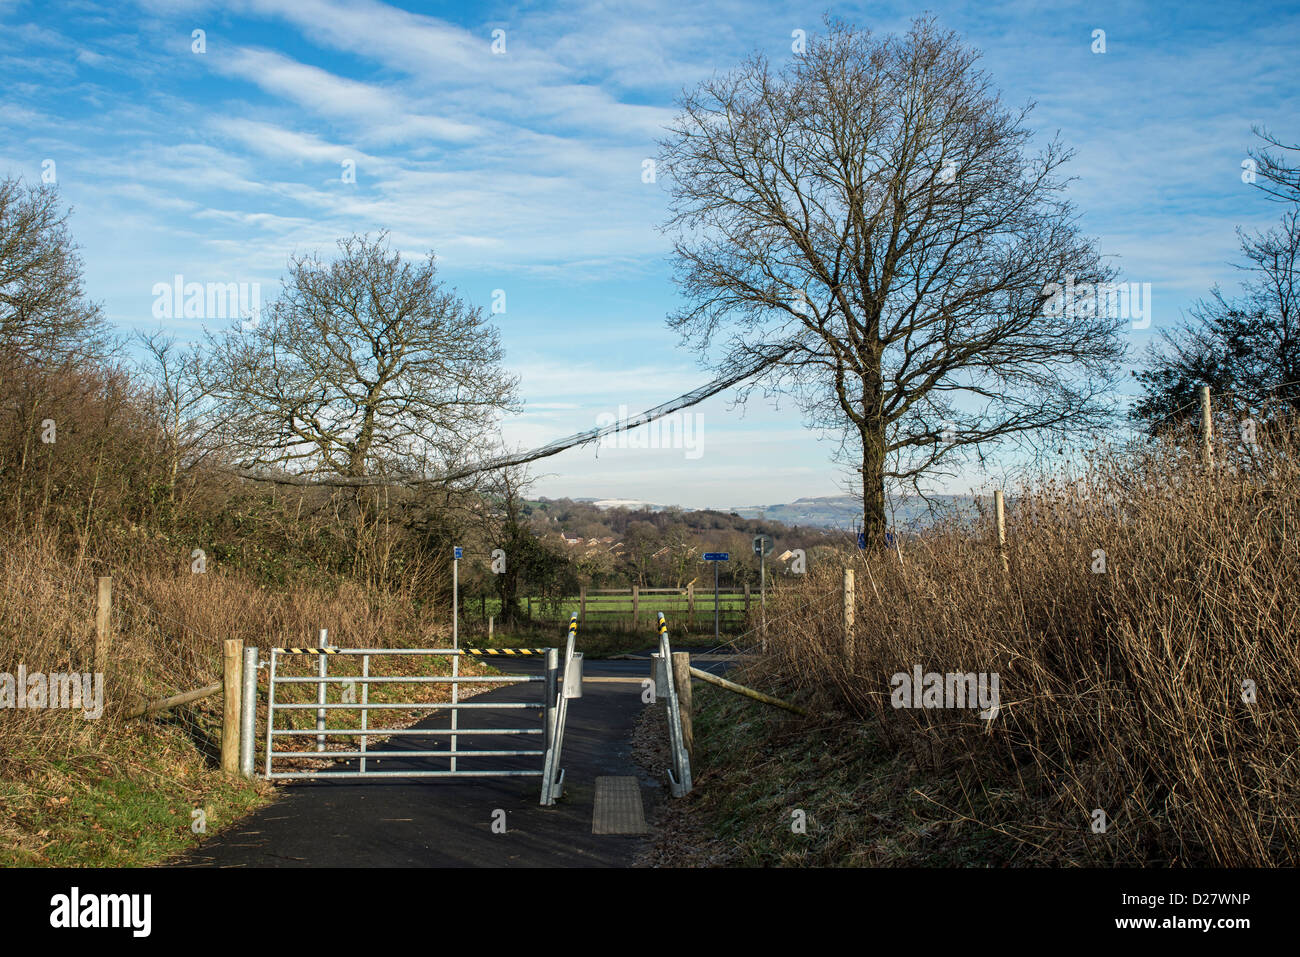 Footpath and Cycleway showing a dormouse bridge in the background - Stock Image